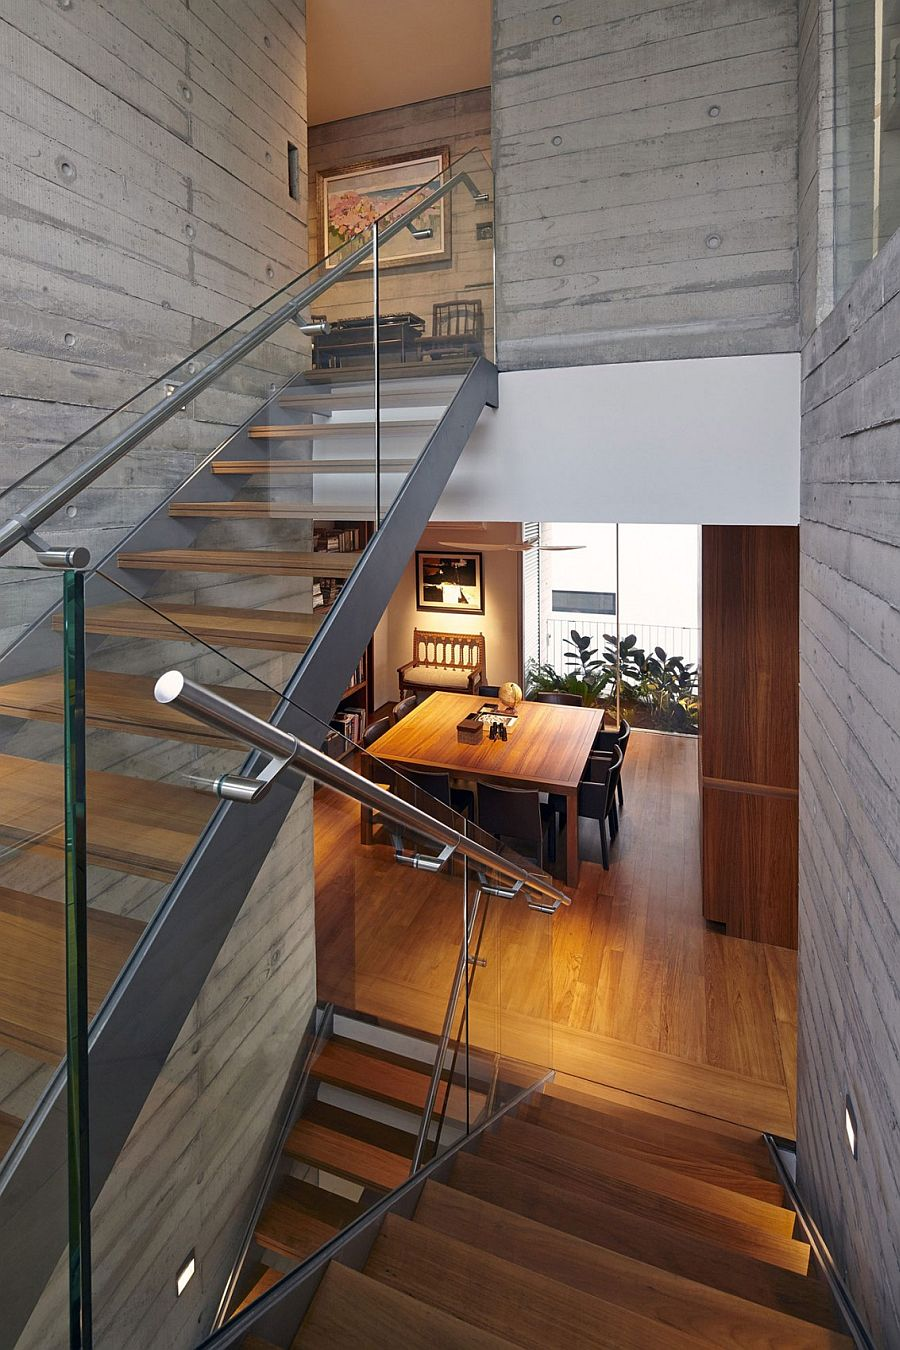 Staircase with wooden steps and glass railing inside the contemporary home